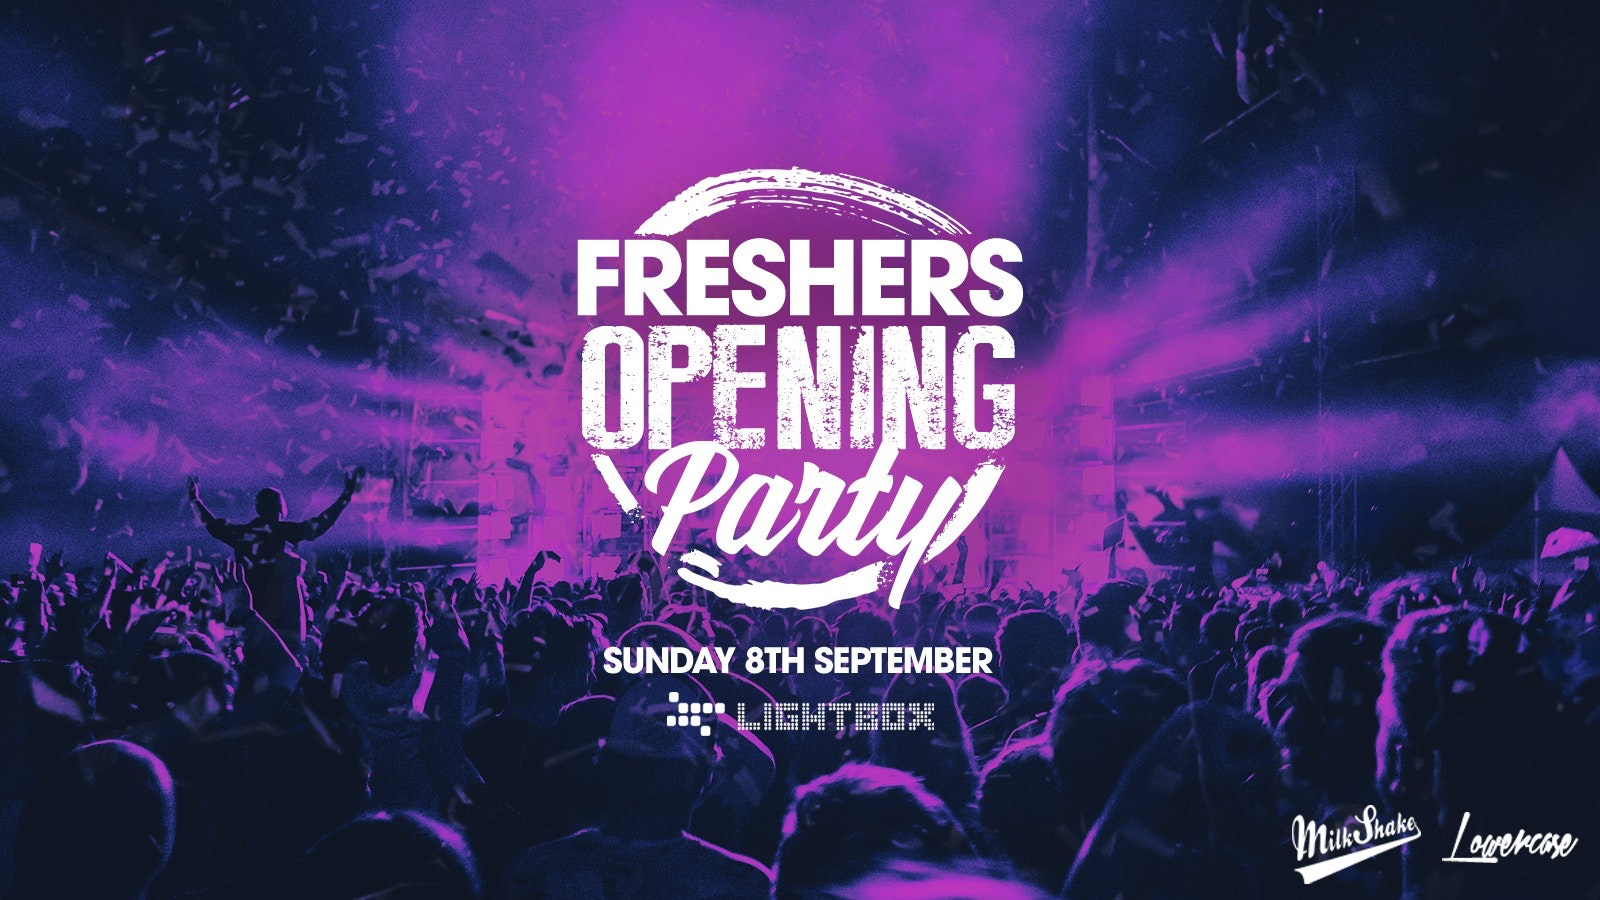 The Official Freshers Opening Party 2019 ⚡